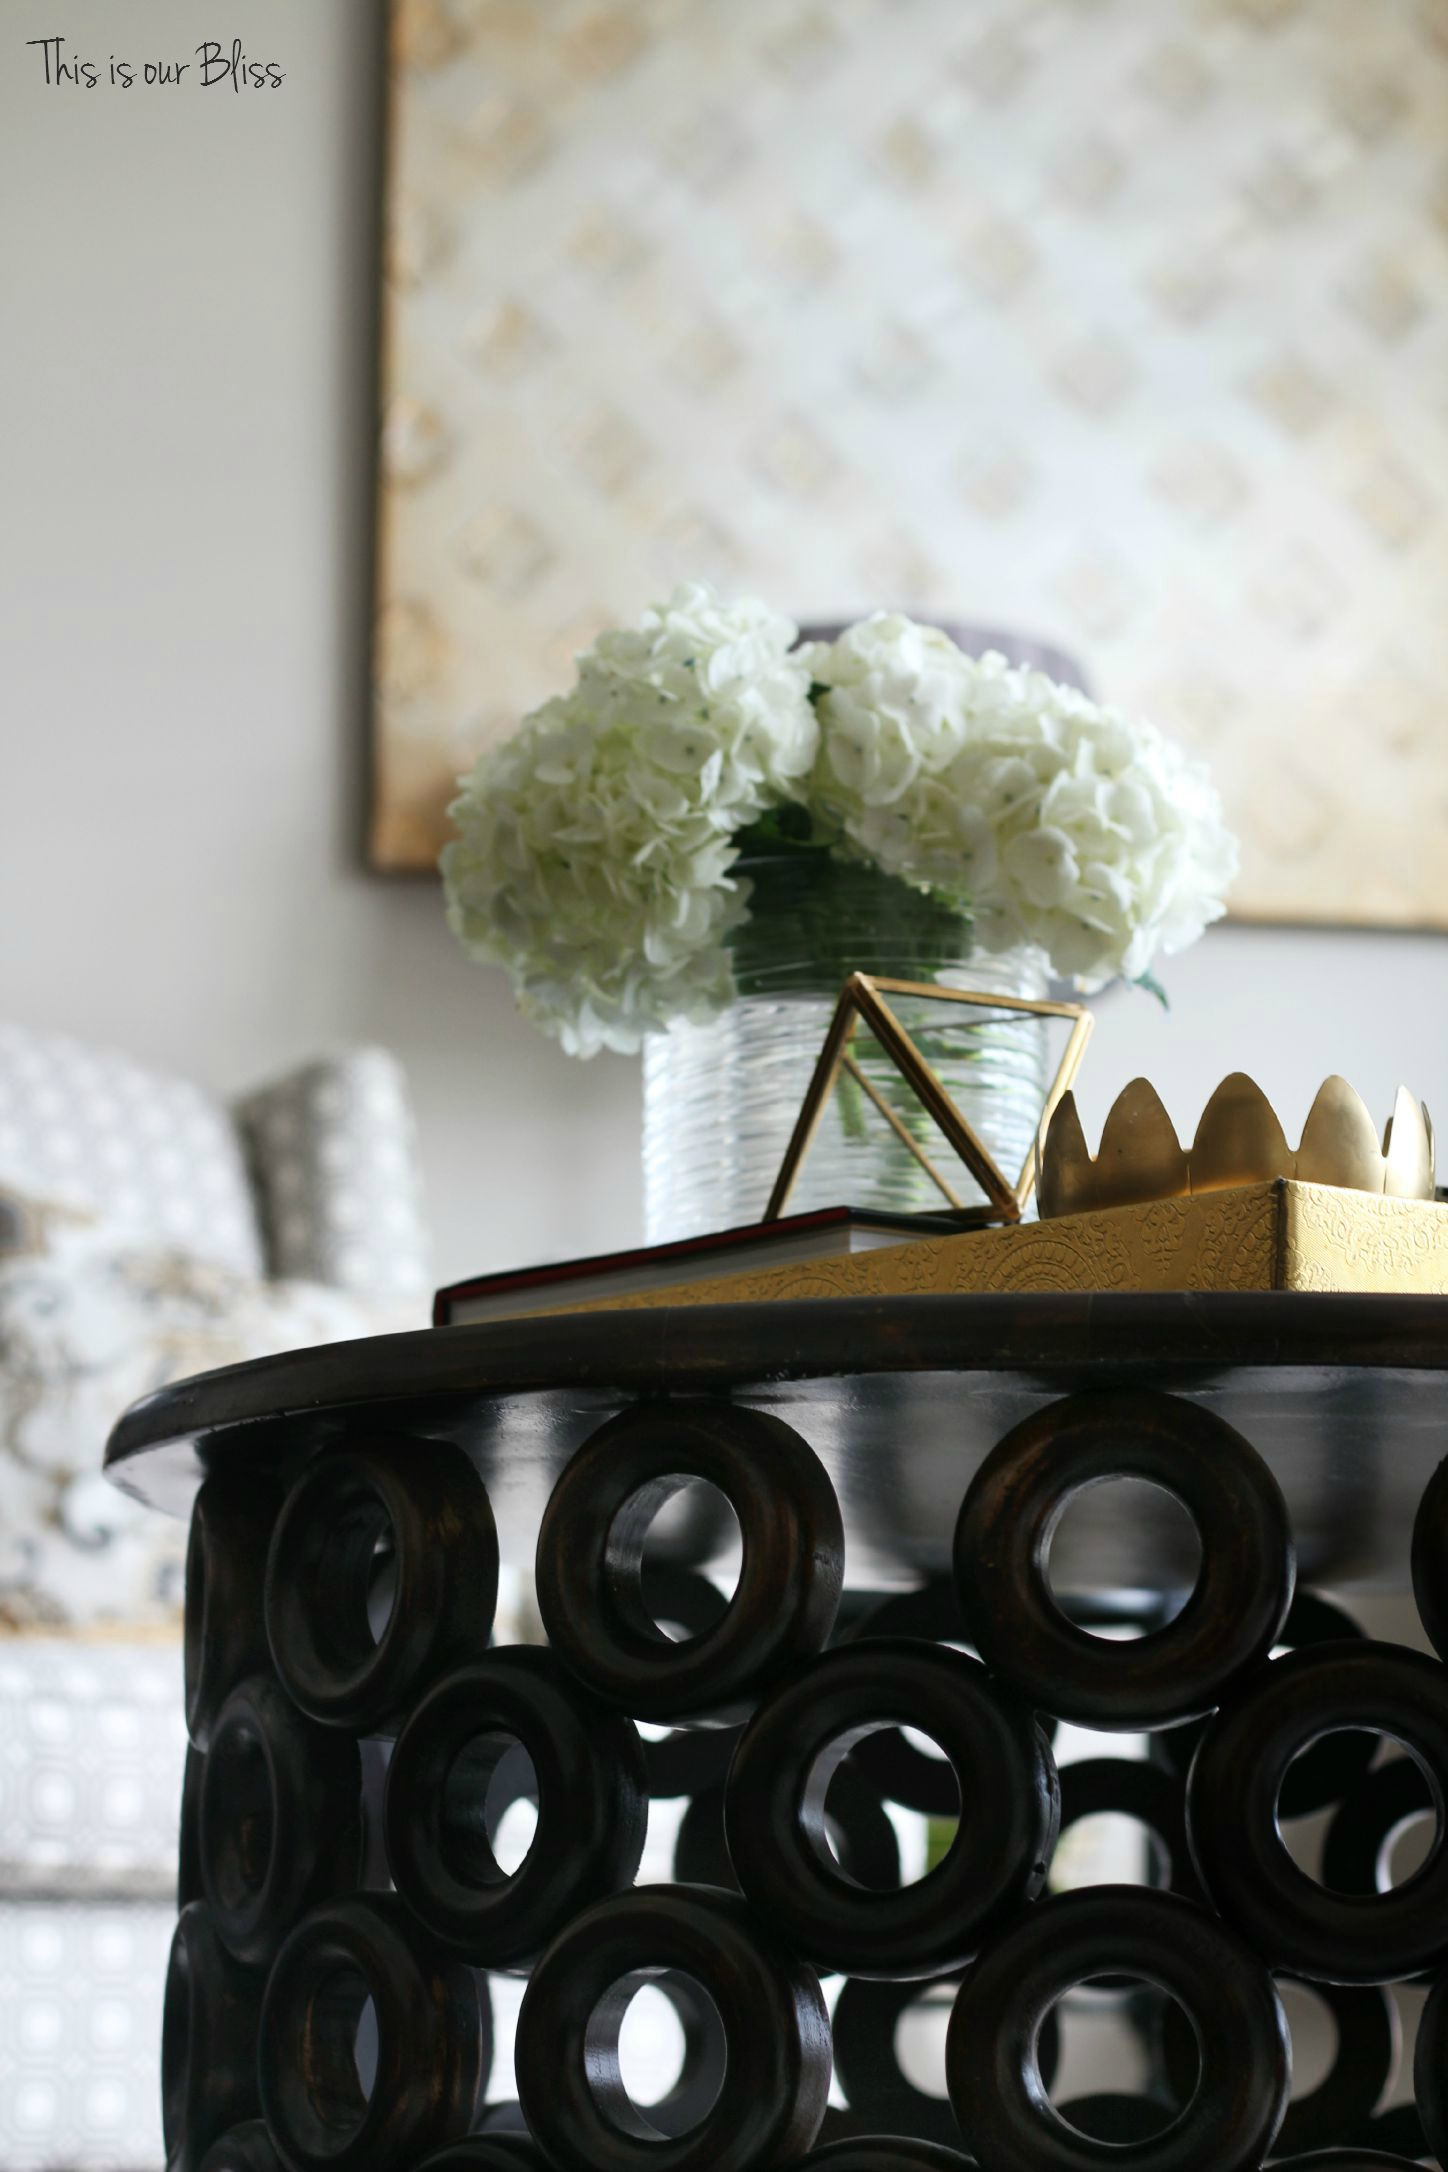 How to style a coffee table - coffee table styling - elements of a well-styled coffee table - coffee table detail - living room chairs - fresh flowers - Back to Basics - This is our Bliss